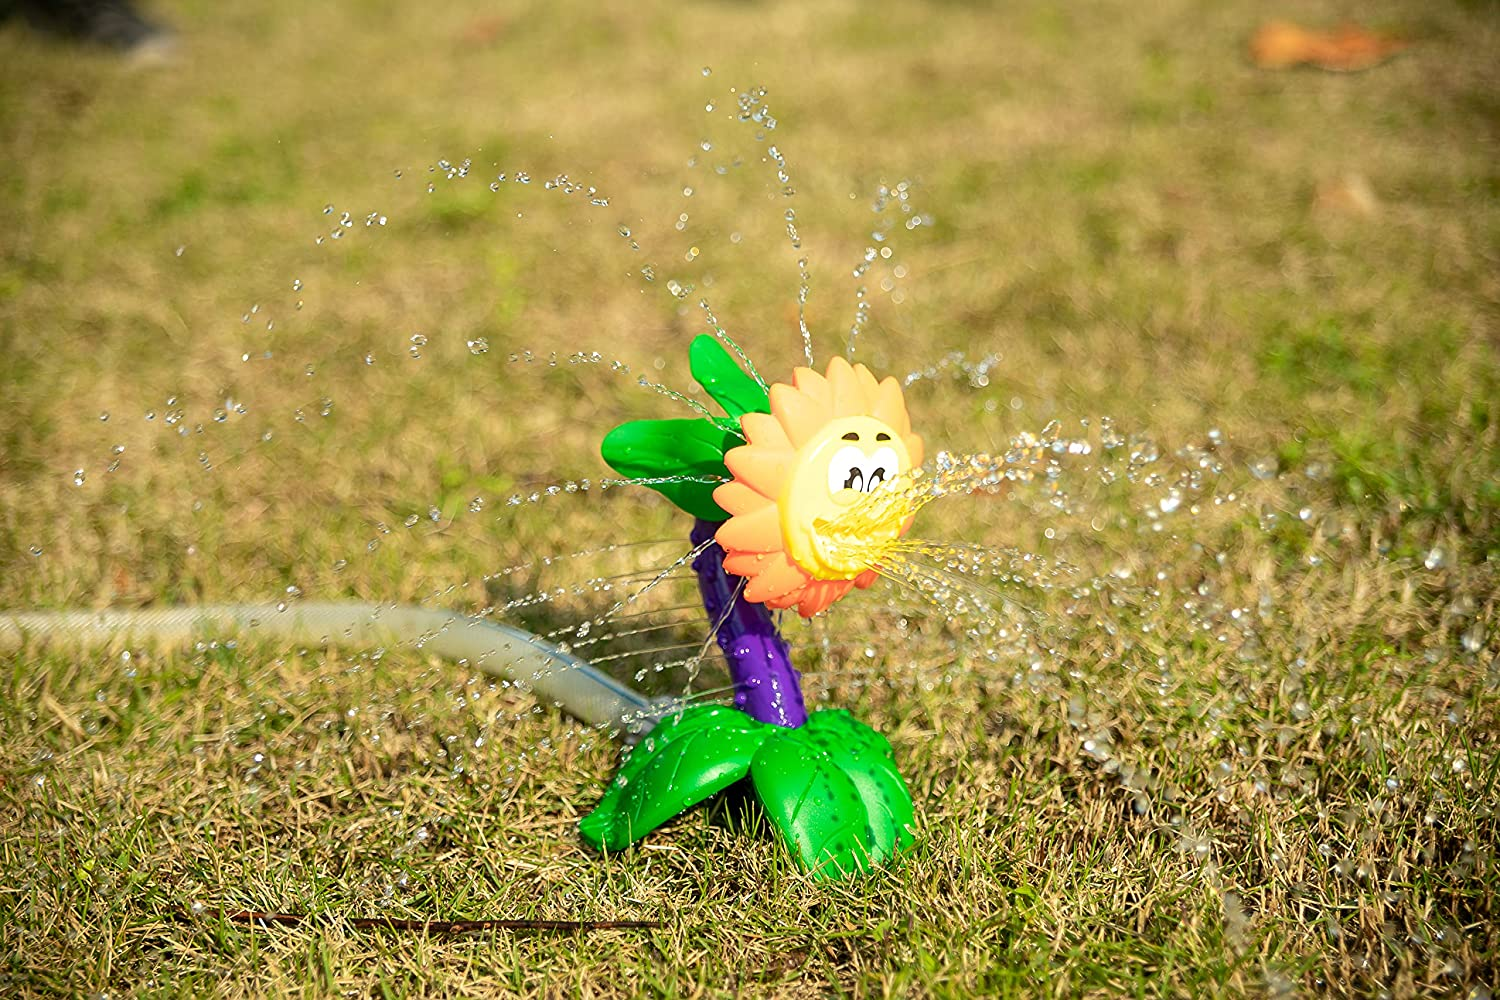 Splash Sunflower Sprinkler Water Spray